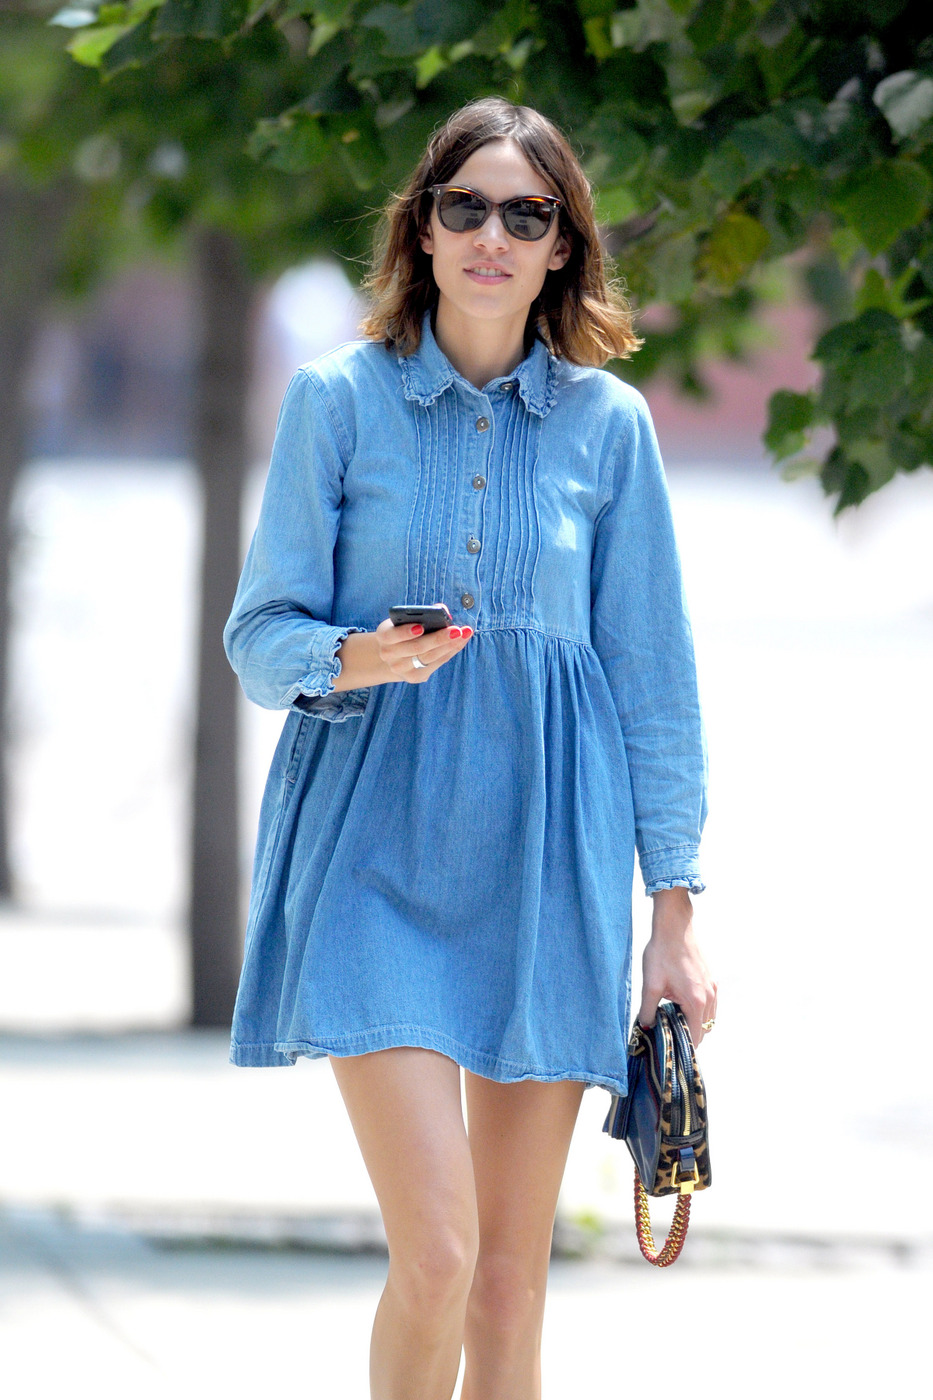 British TV host Alexa Chung dons a short denim smock dress as she strolls in New York's East Village